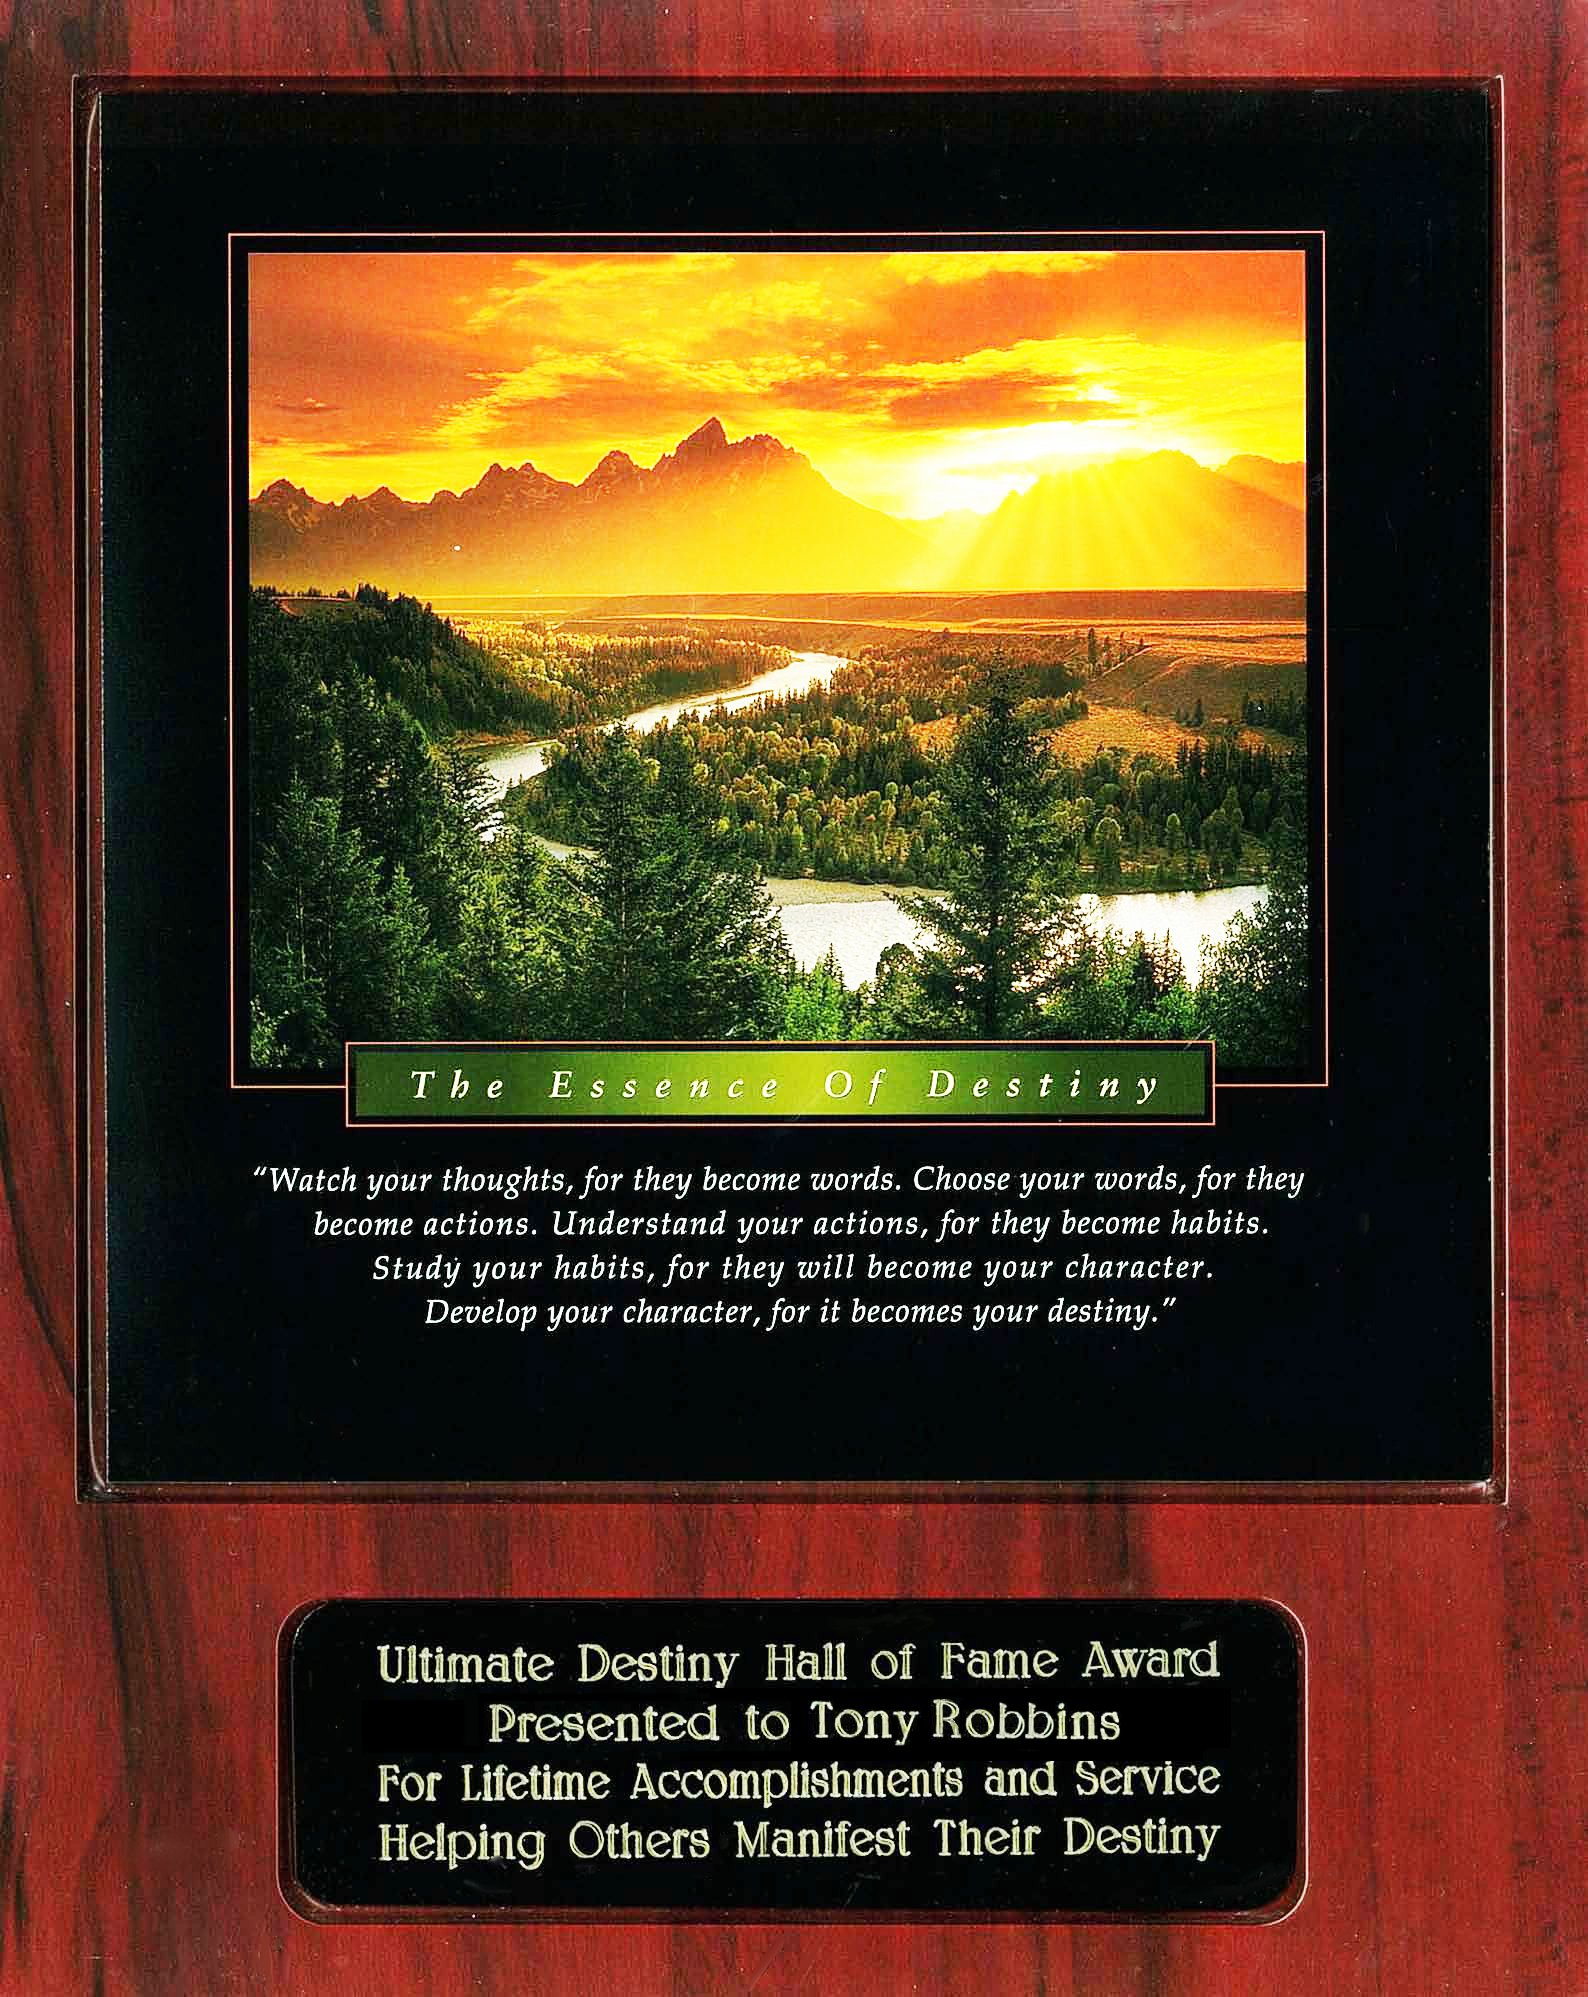 Tony Robbins Ultimate Destiny Hall of Fame Award Recipient Plaque